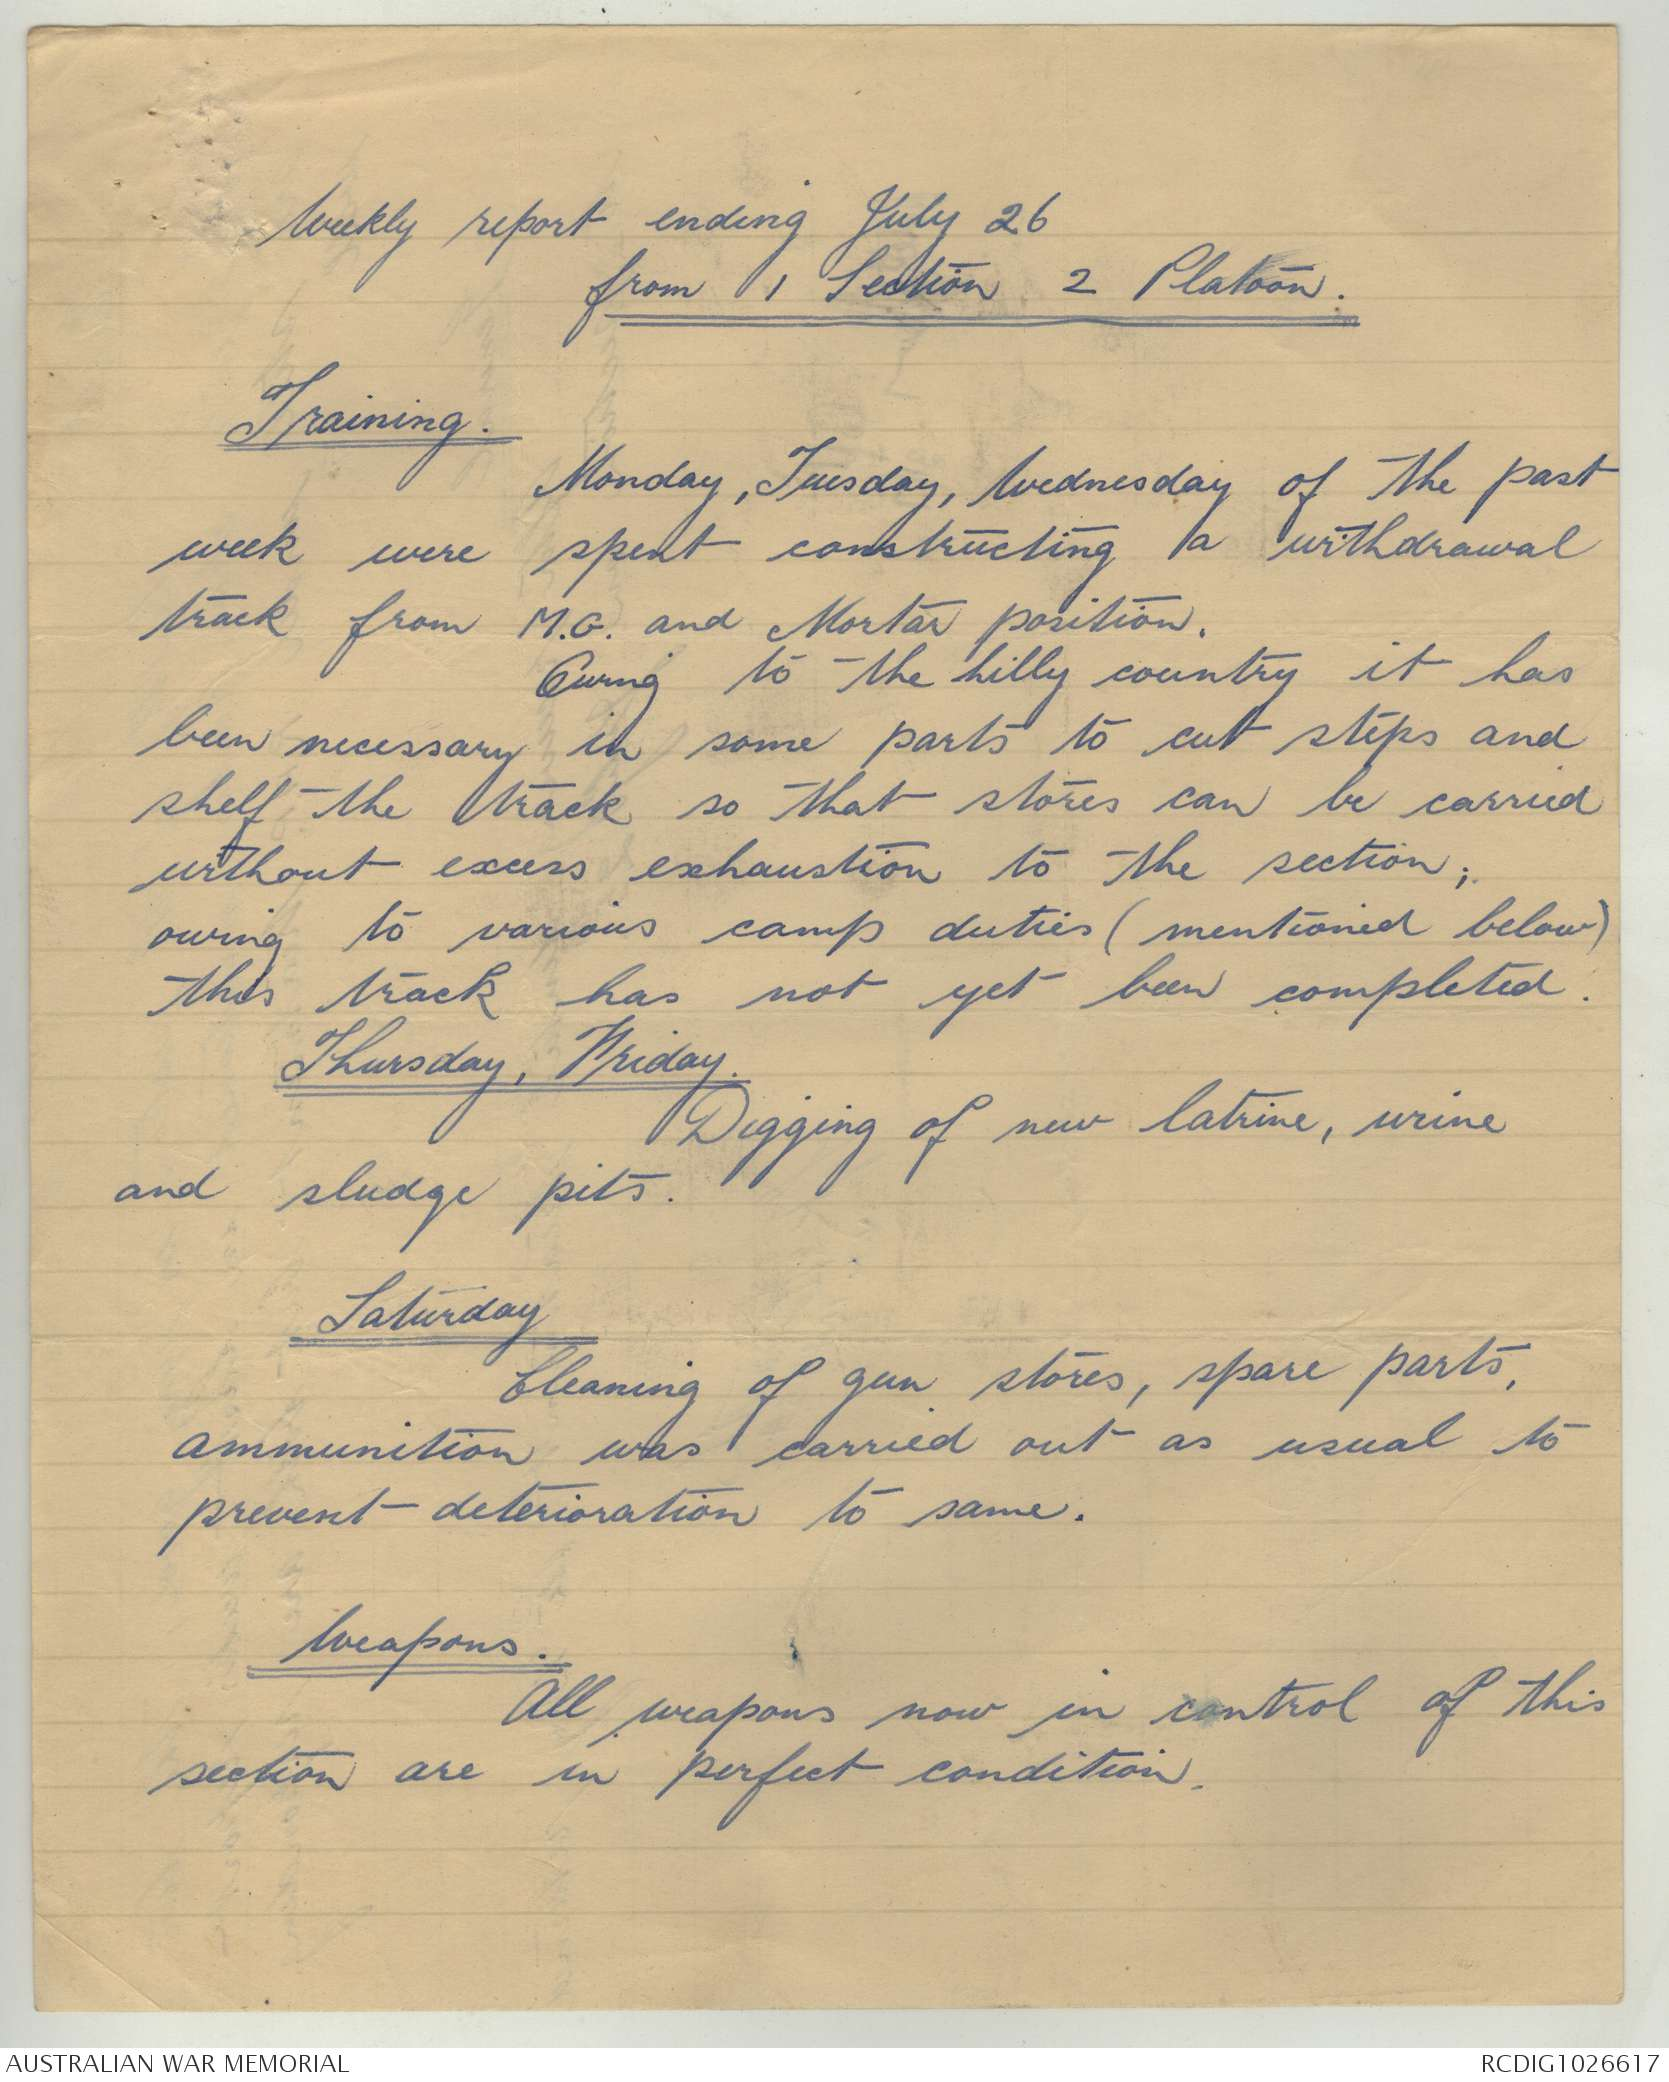 AWM52 8/3/62/34 - July 1943, Appendices, B and D Companys, Situation